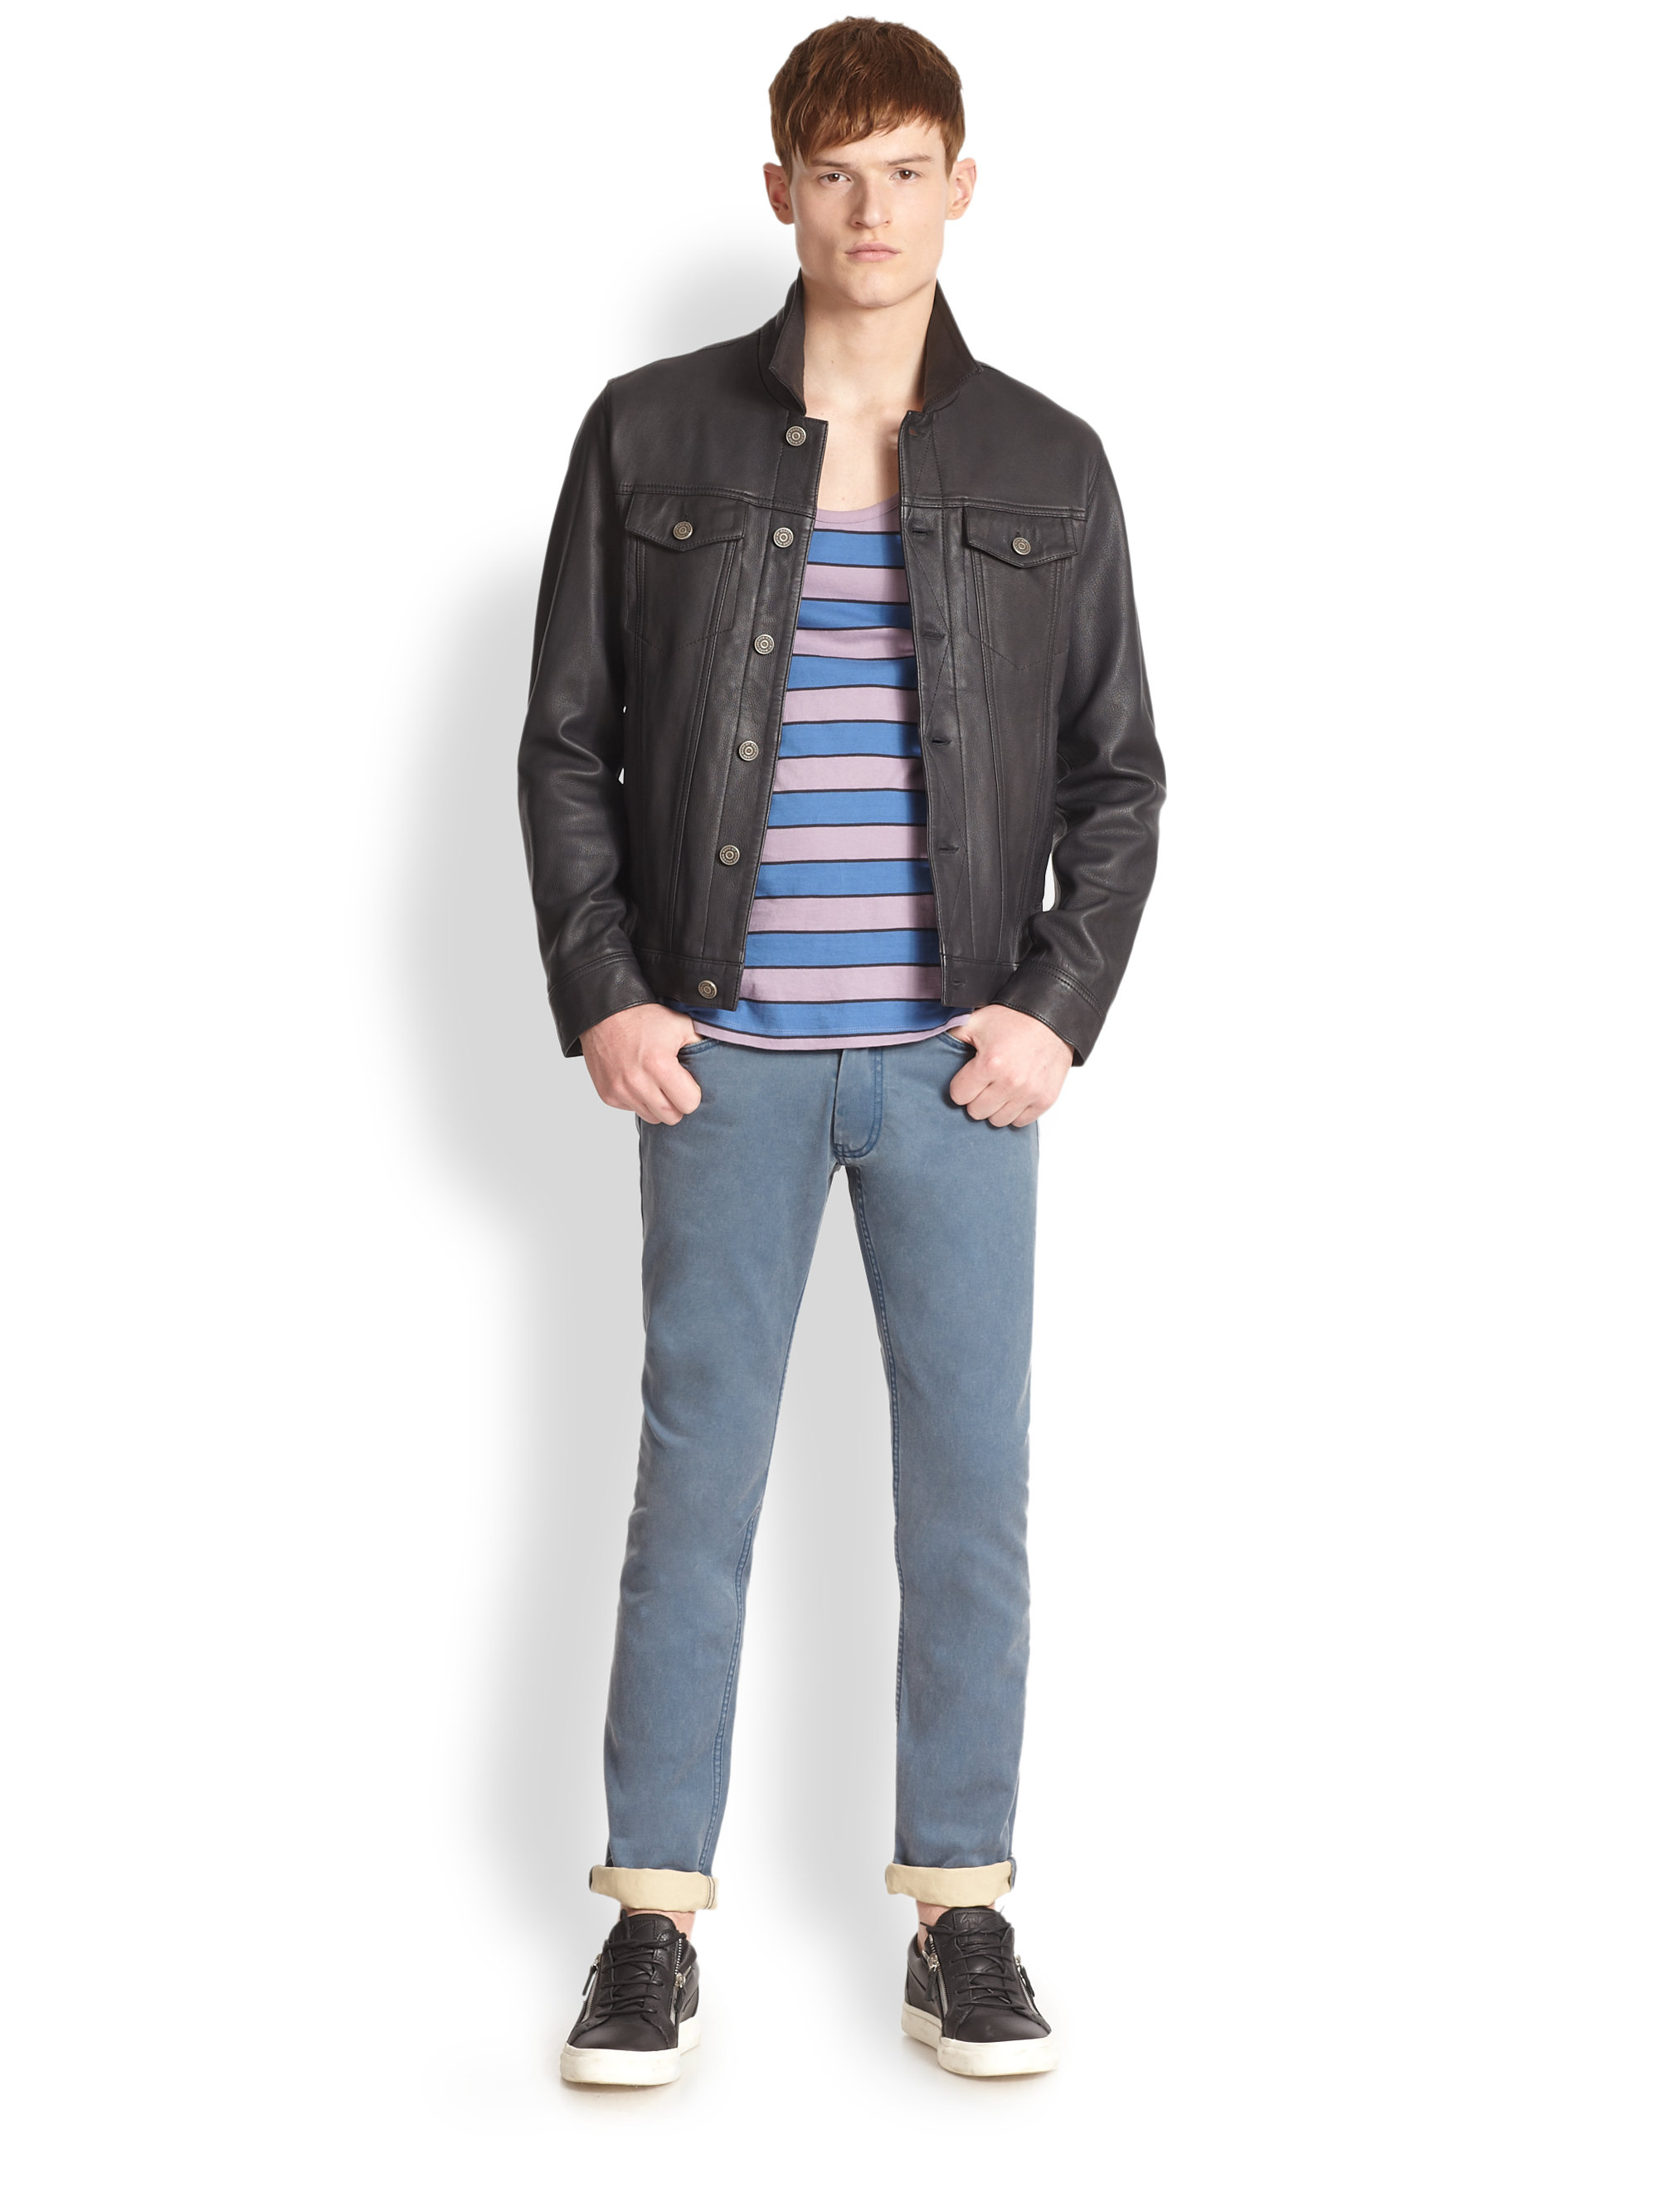 Marc jacobs mens leather jacket